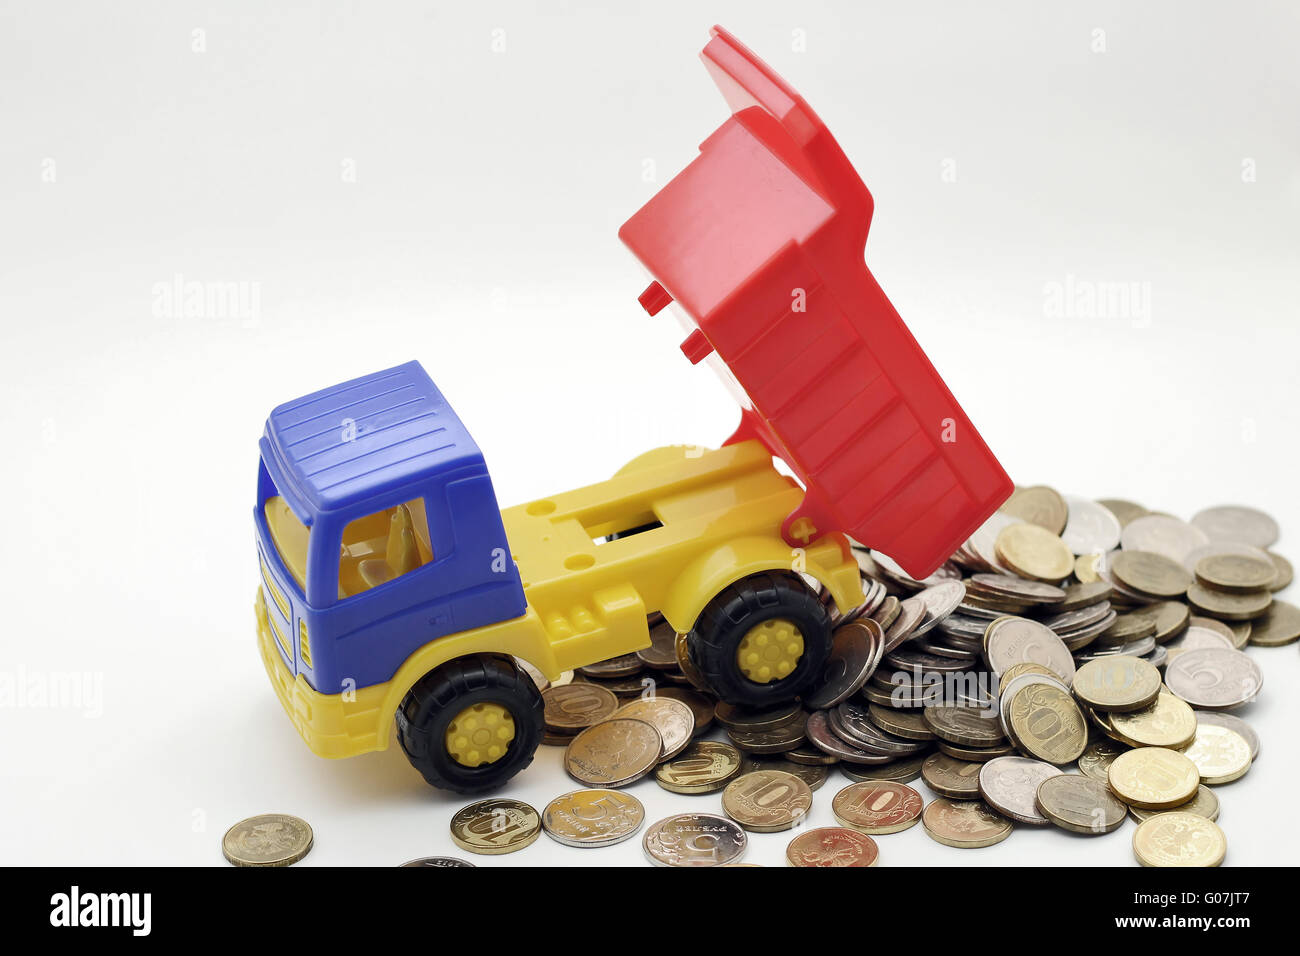 Toy truck transports coins. on white background - Stock Image